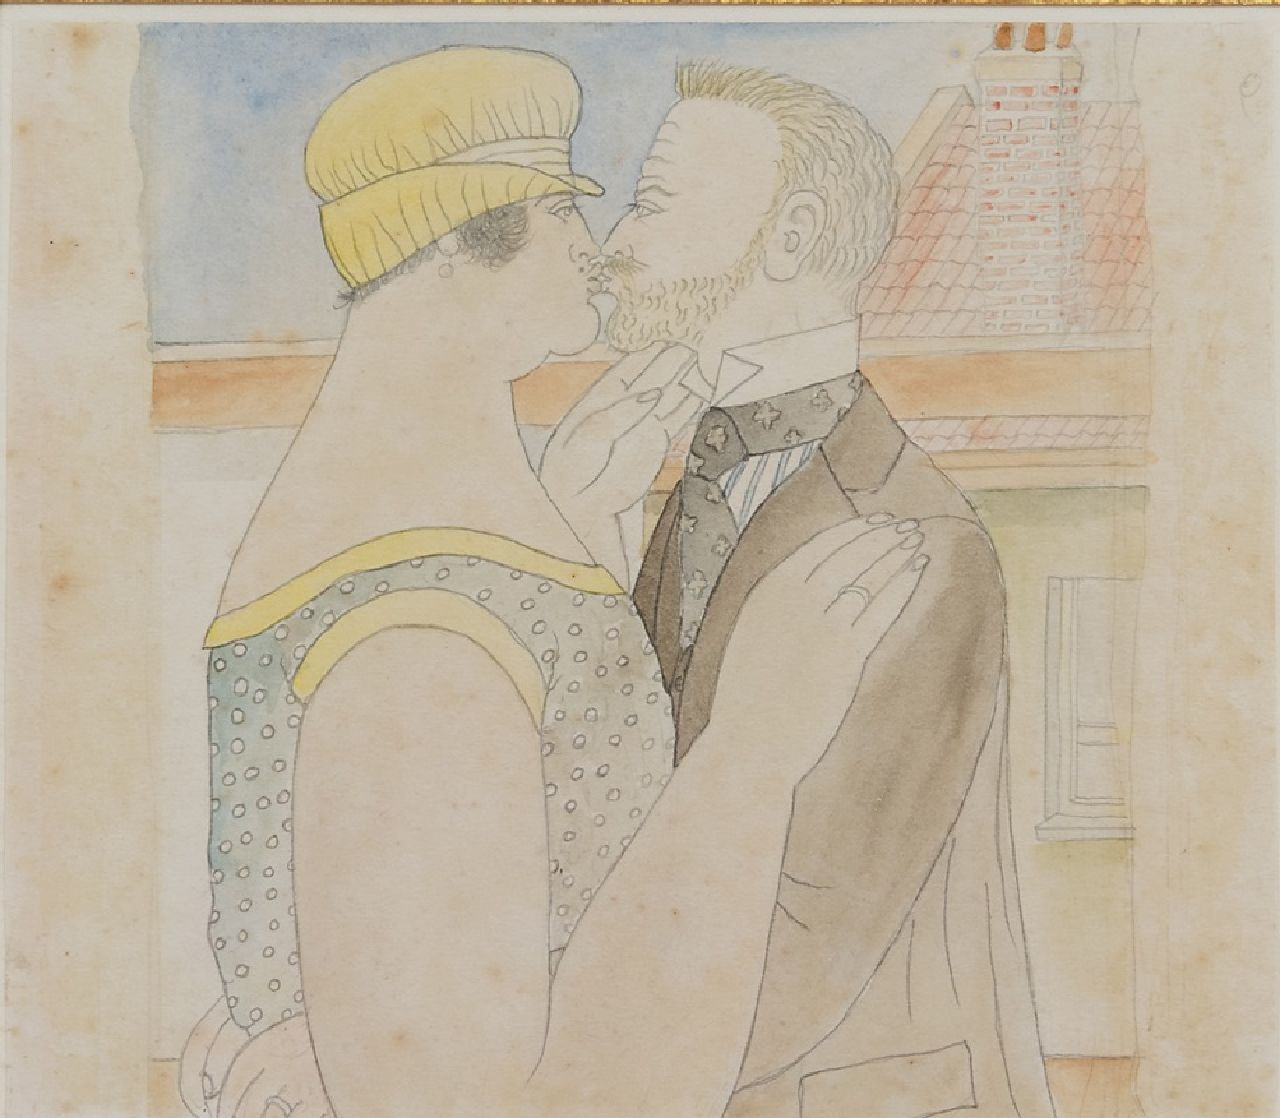 Erfmann F.G.  | 'Ferdinand' George Erfmann | Watercolours and drawings offered for sale | A kiss on the rooftop, pencil and watercolour on paper 15.0 x 13.0 cm